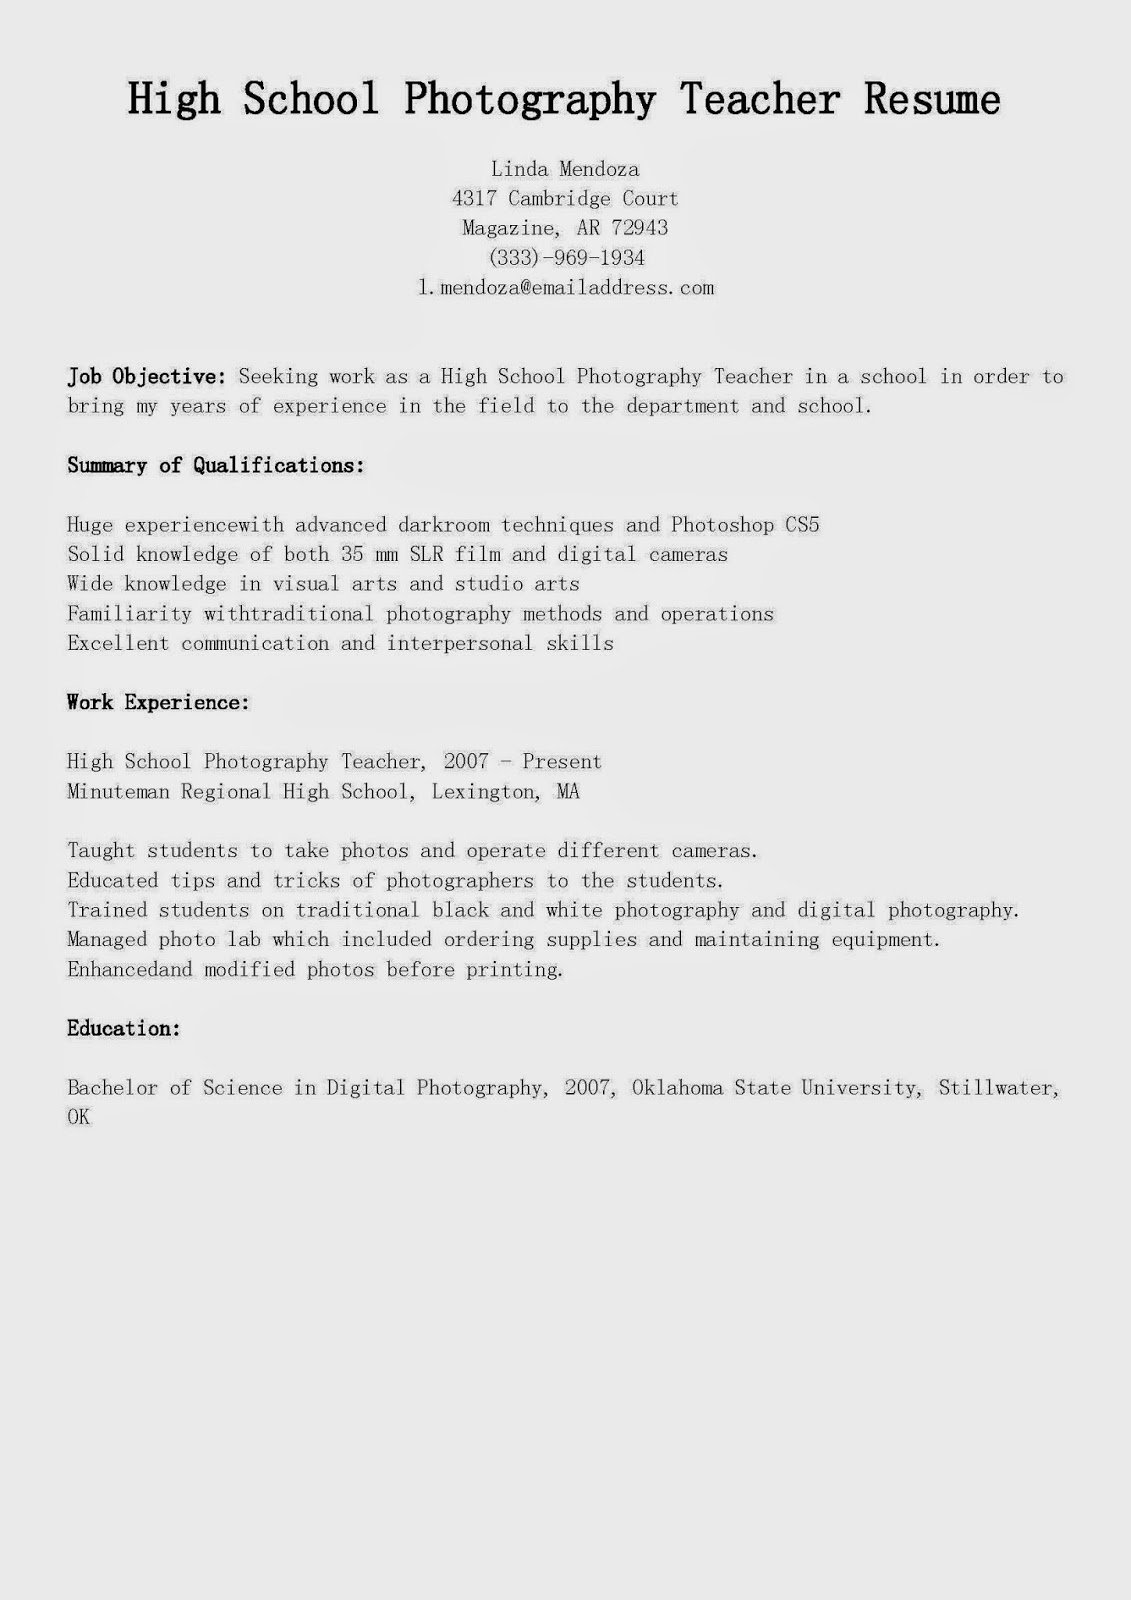 sample resume of a teacher in high school - resume samples high school photography teacher resume sample